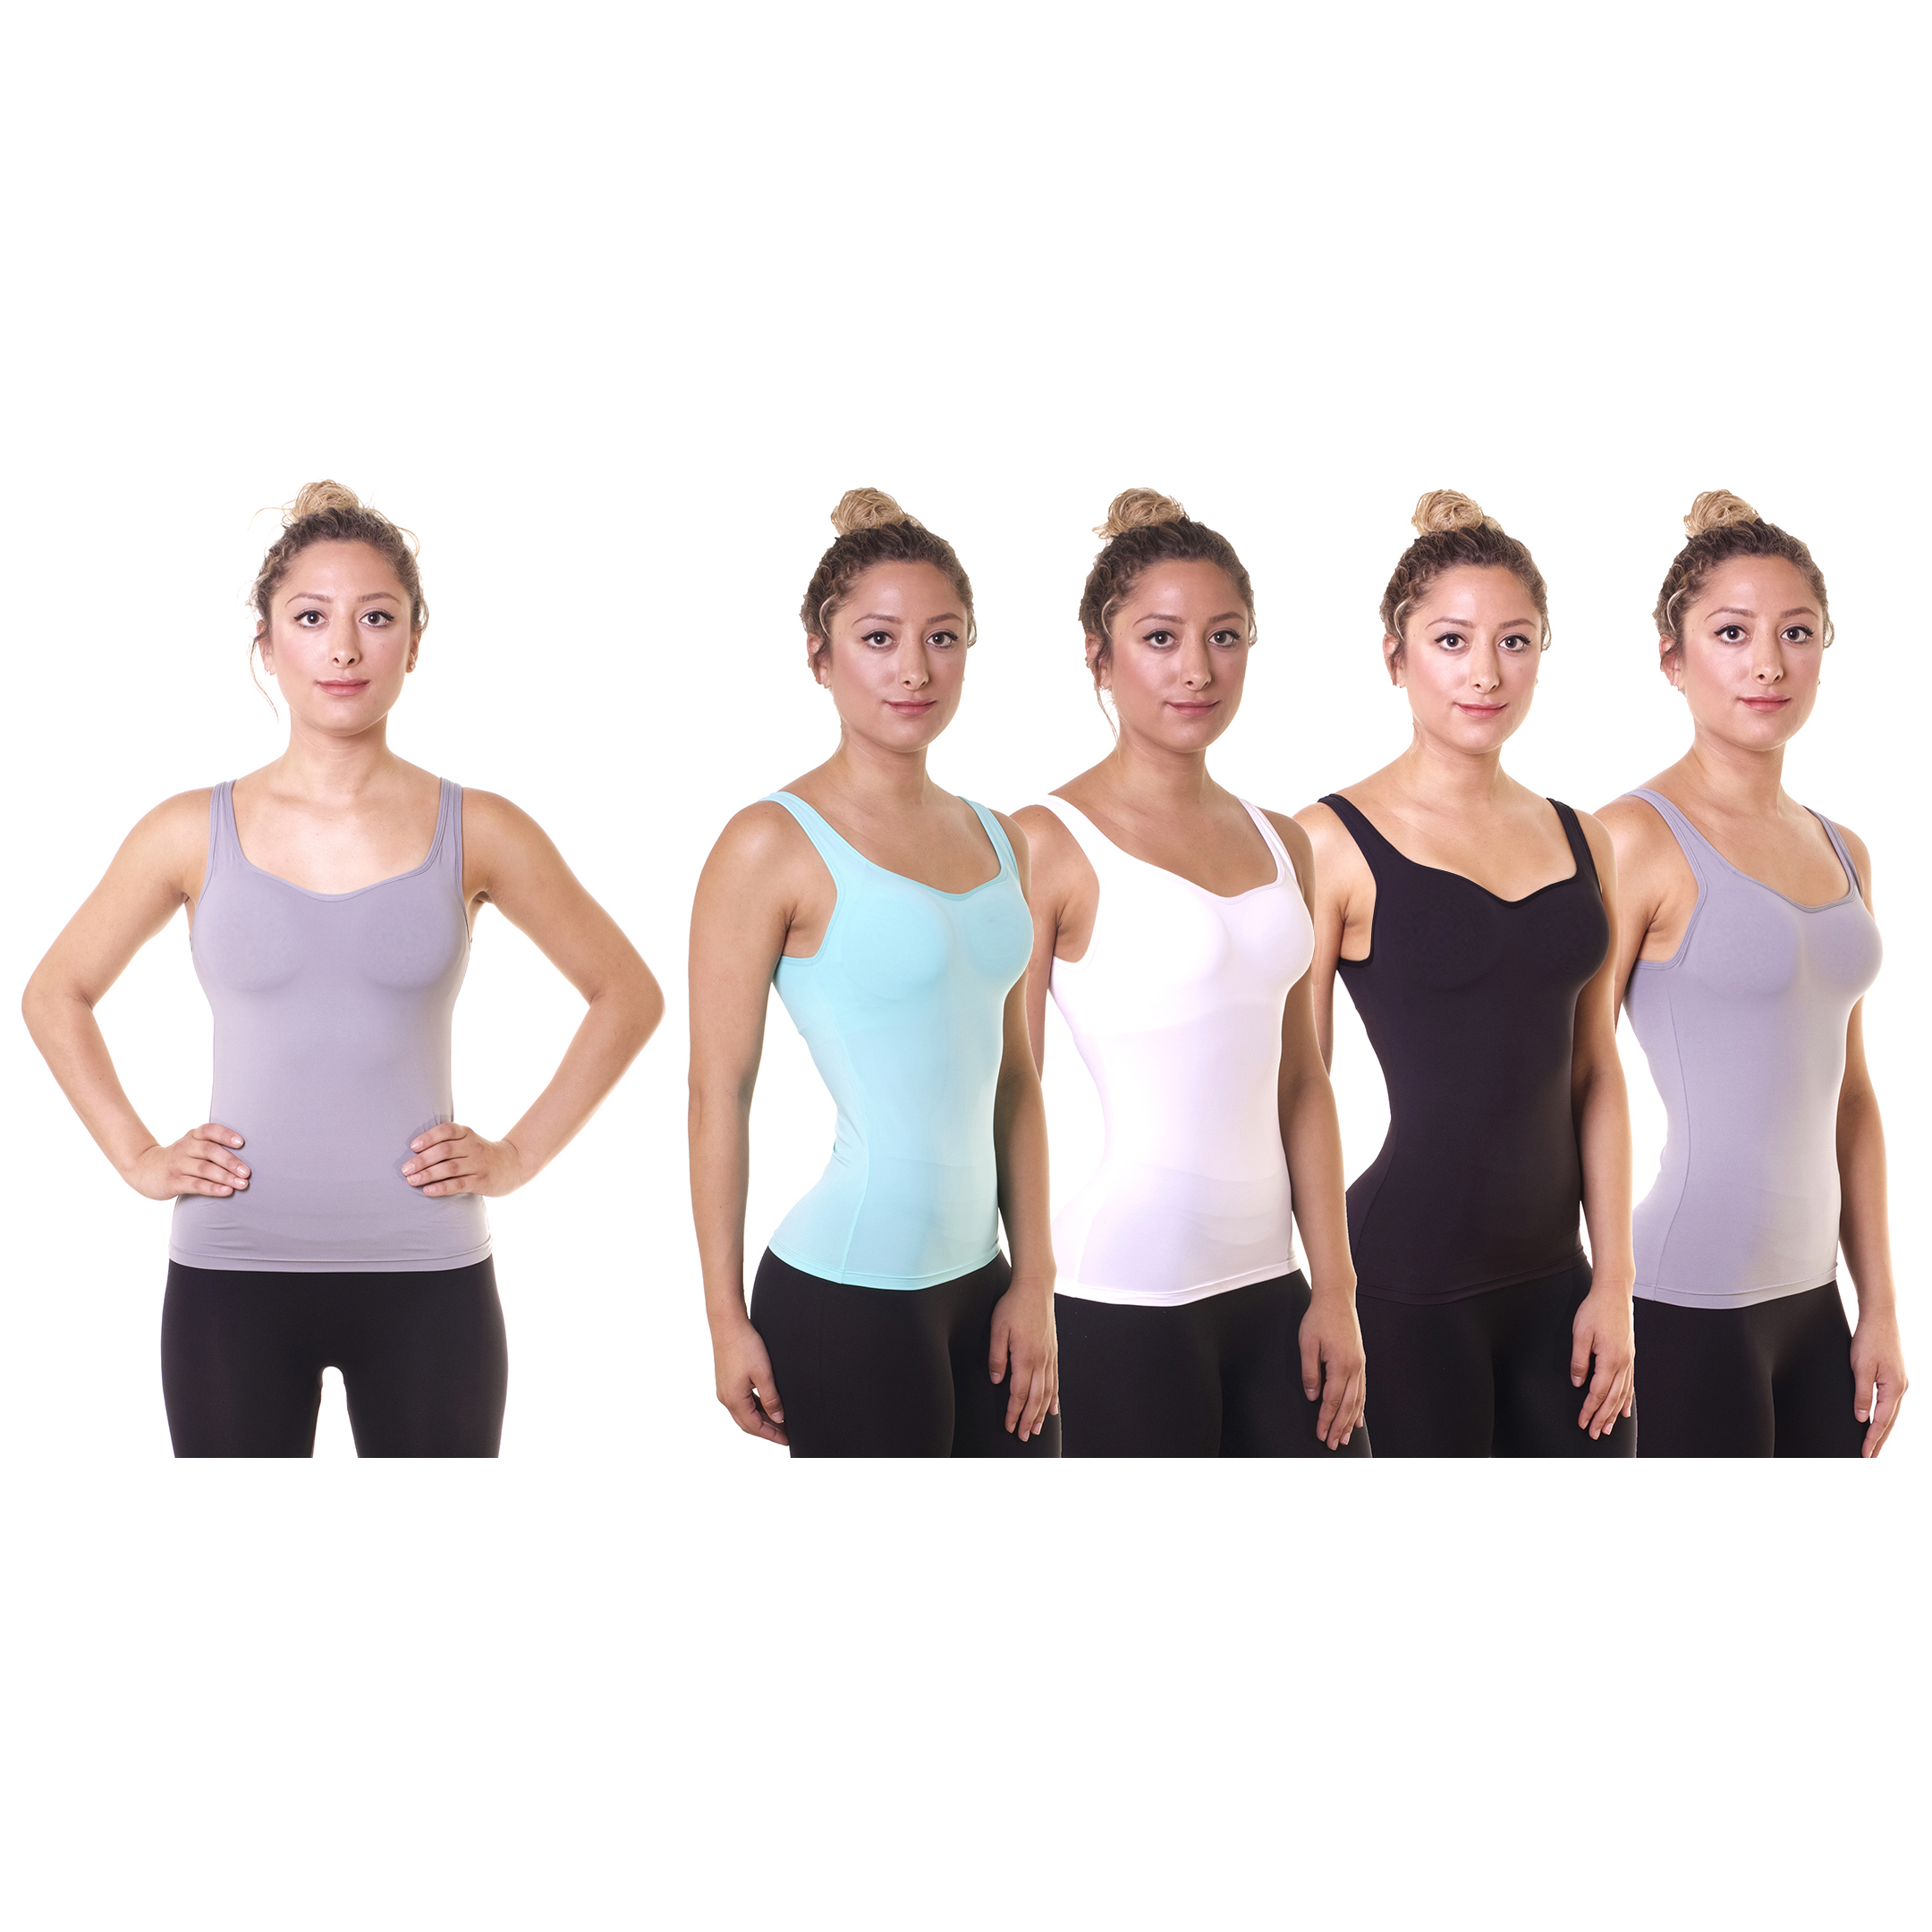 4-Pack Cover Girl Women s Athletic Built-in Bra Support Racerback Tank 55a6a9d1a0f1